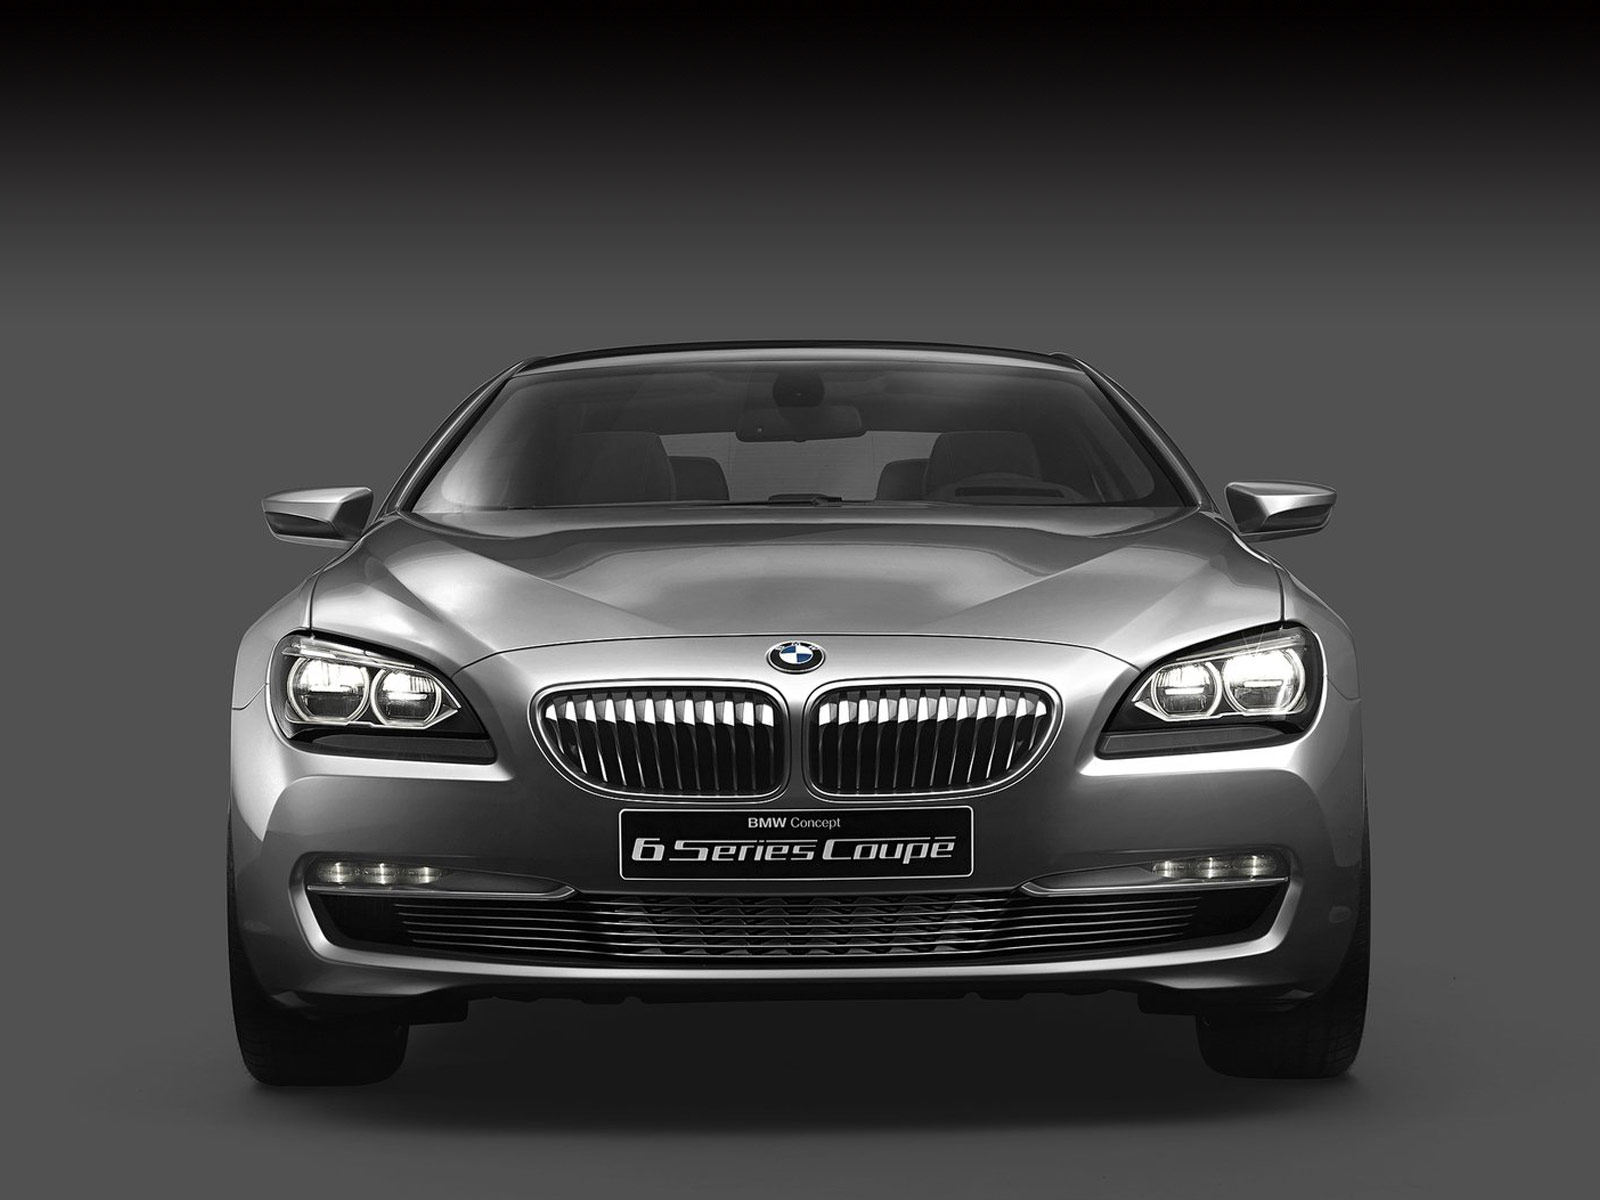 2018 BMW 6 Series Coupe Concept photo - 3